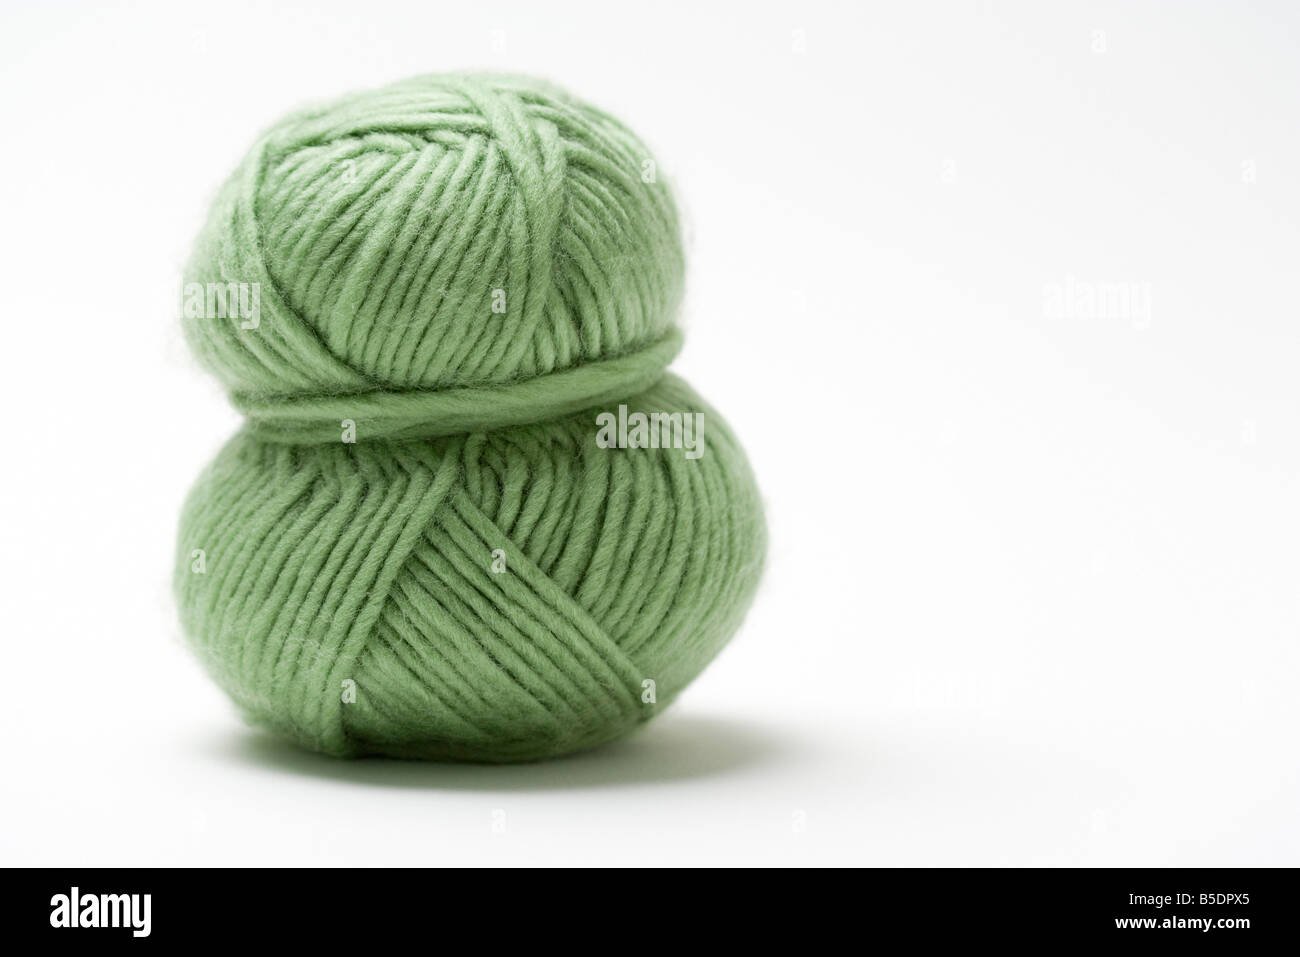 Skein of green yarn, close-up - Stock Image